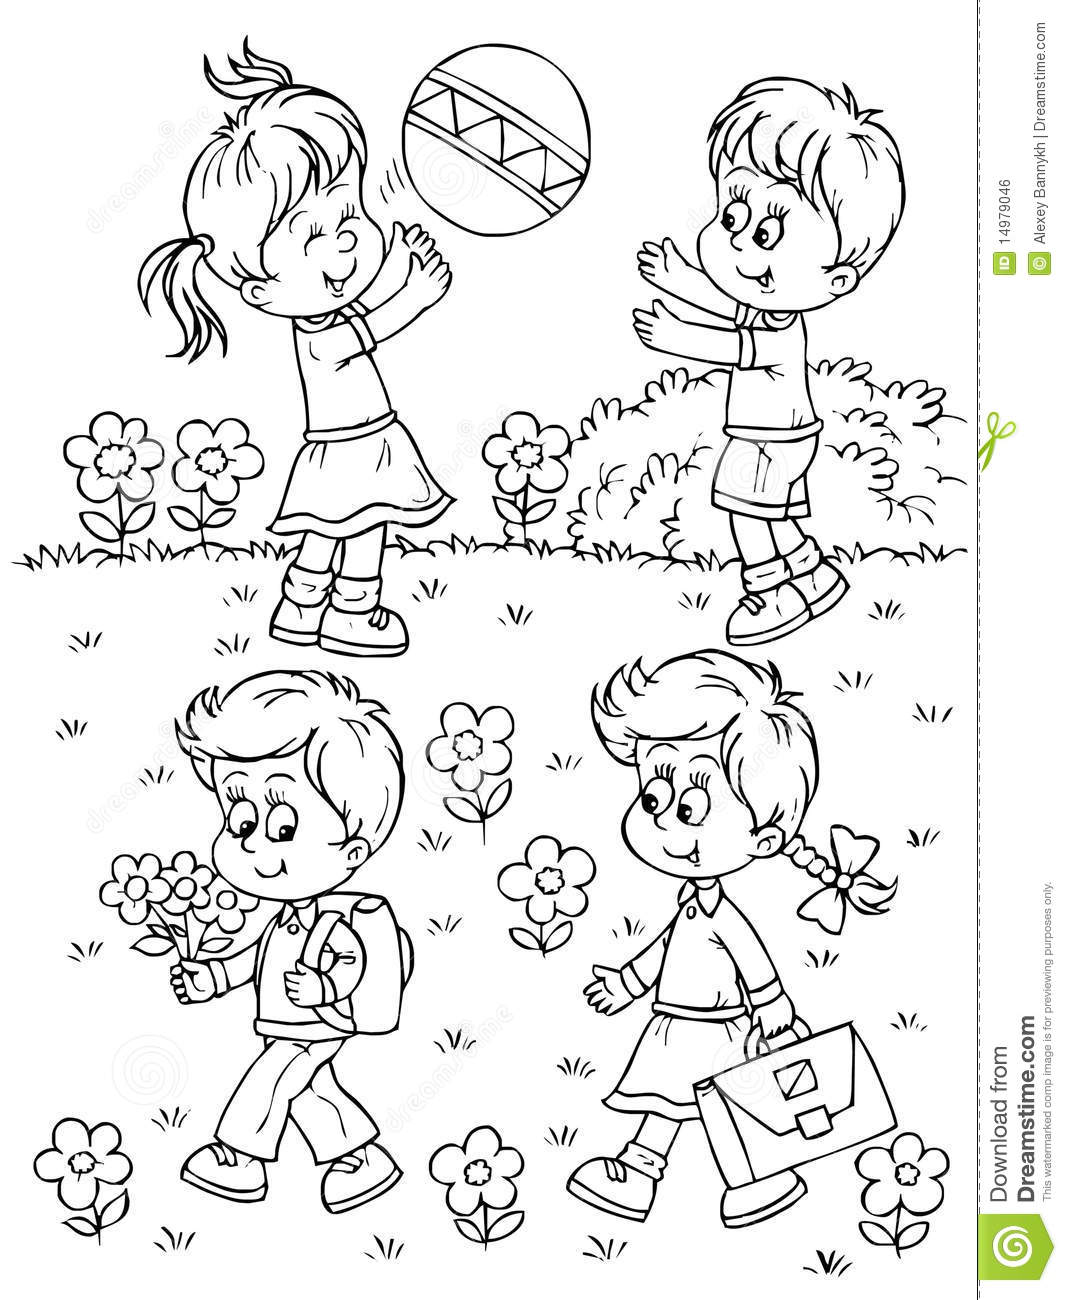 playing safe coloring pages - photo#24